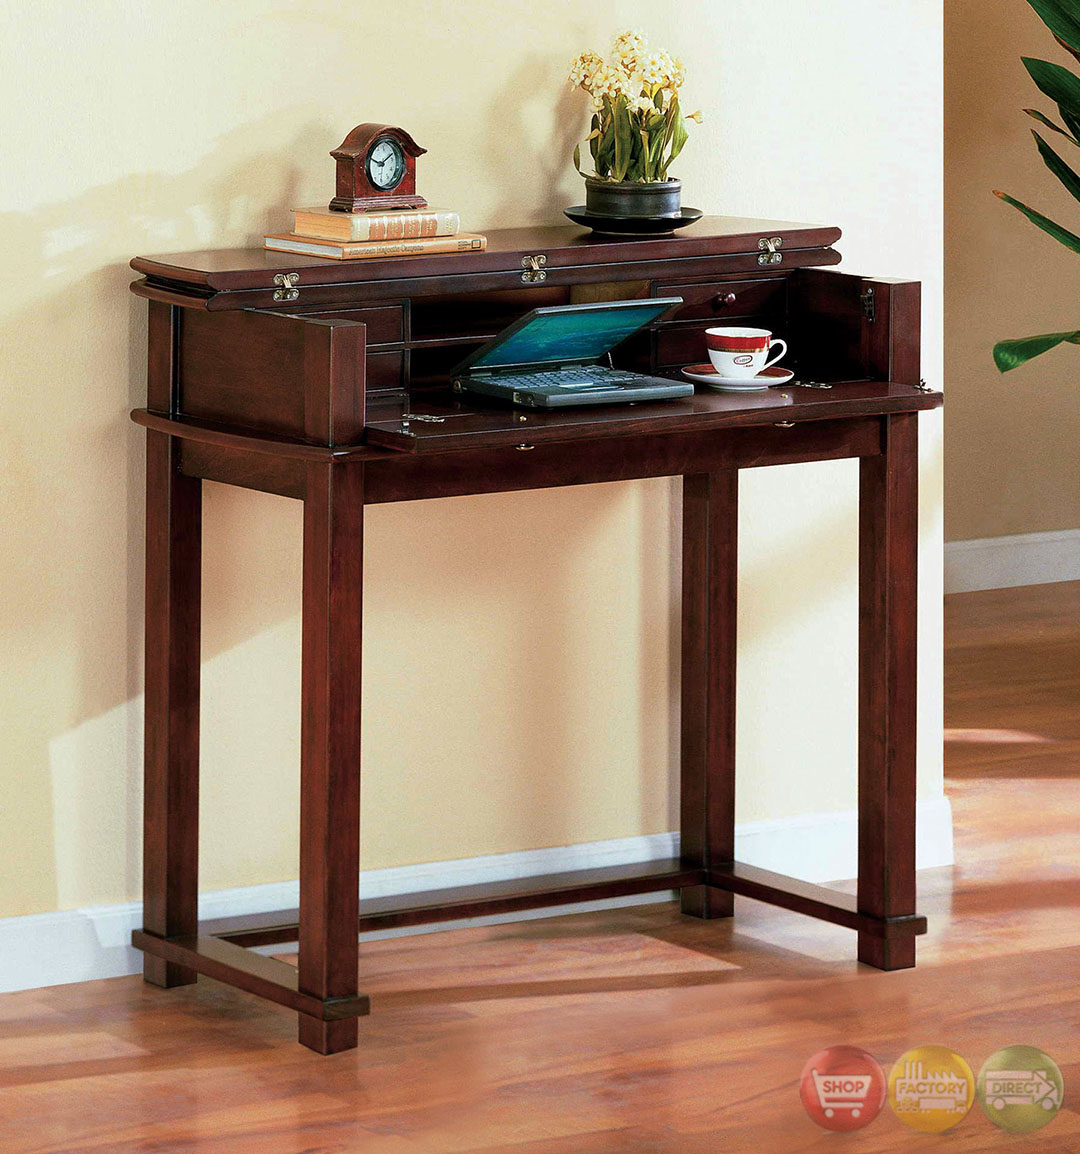 Pine Hurst Cherry Accent Tables With 3 Drawer Coffee Table